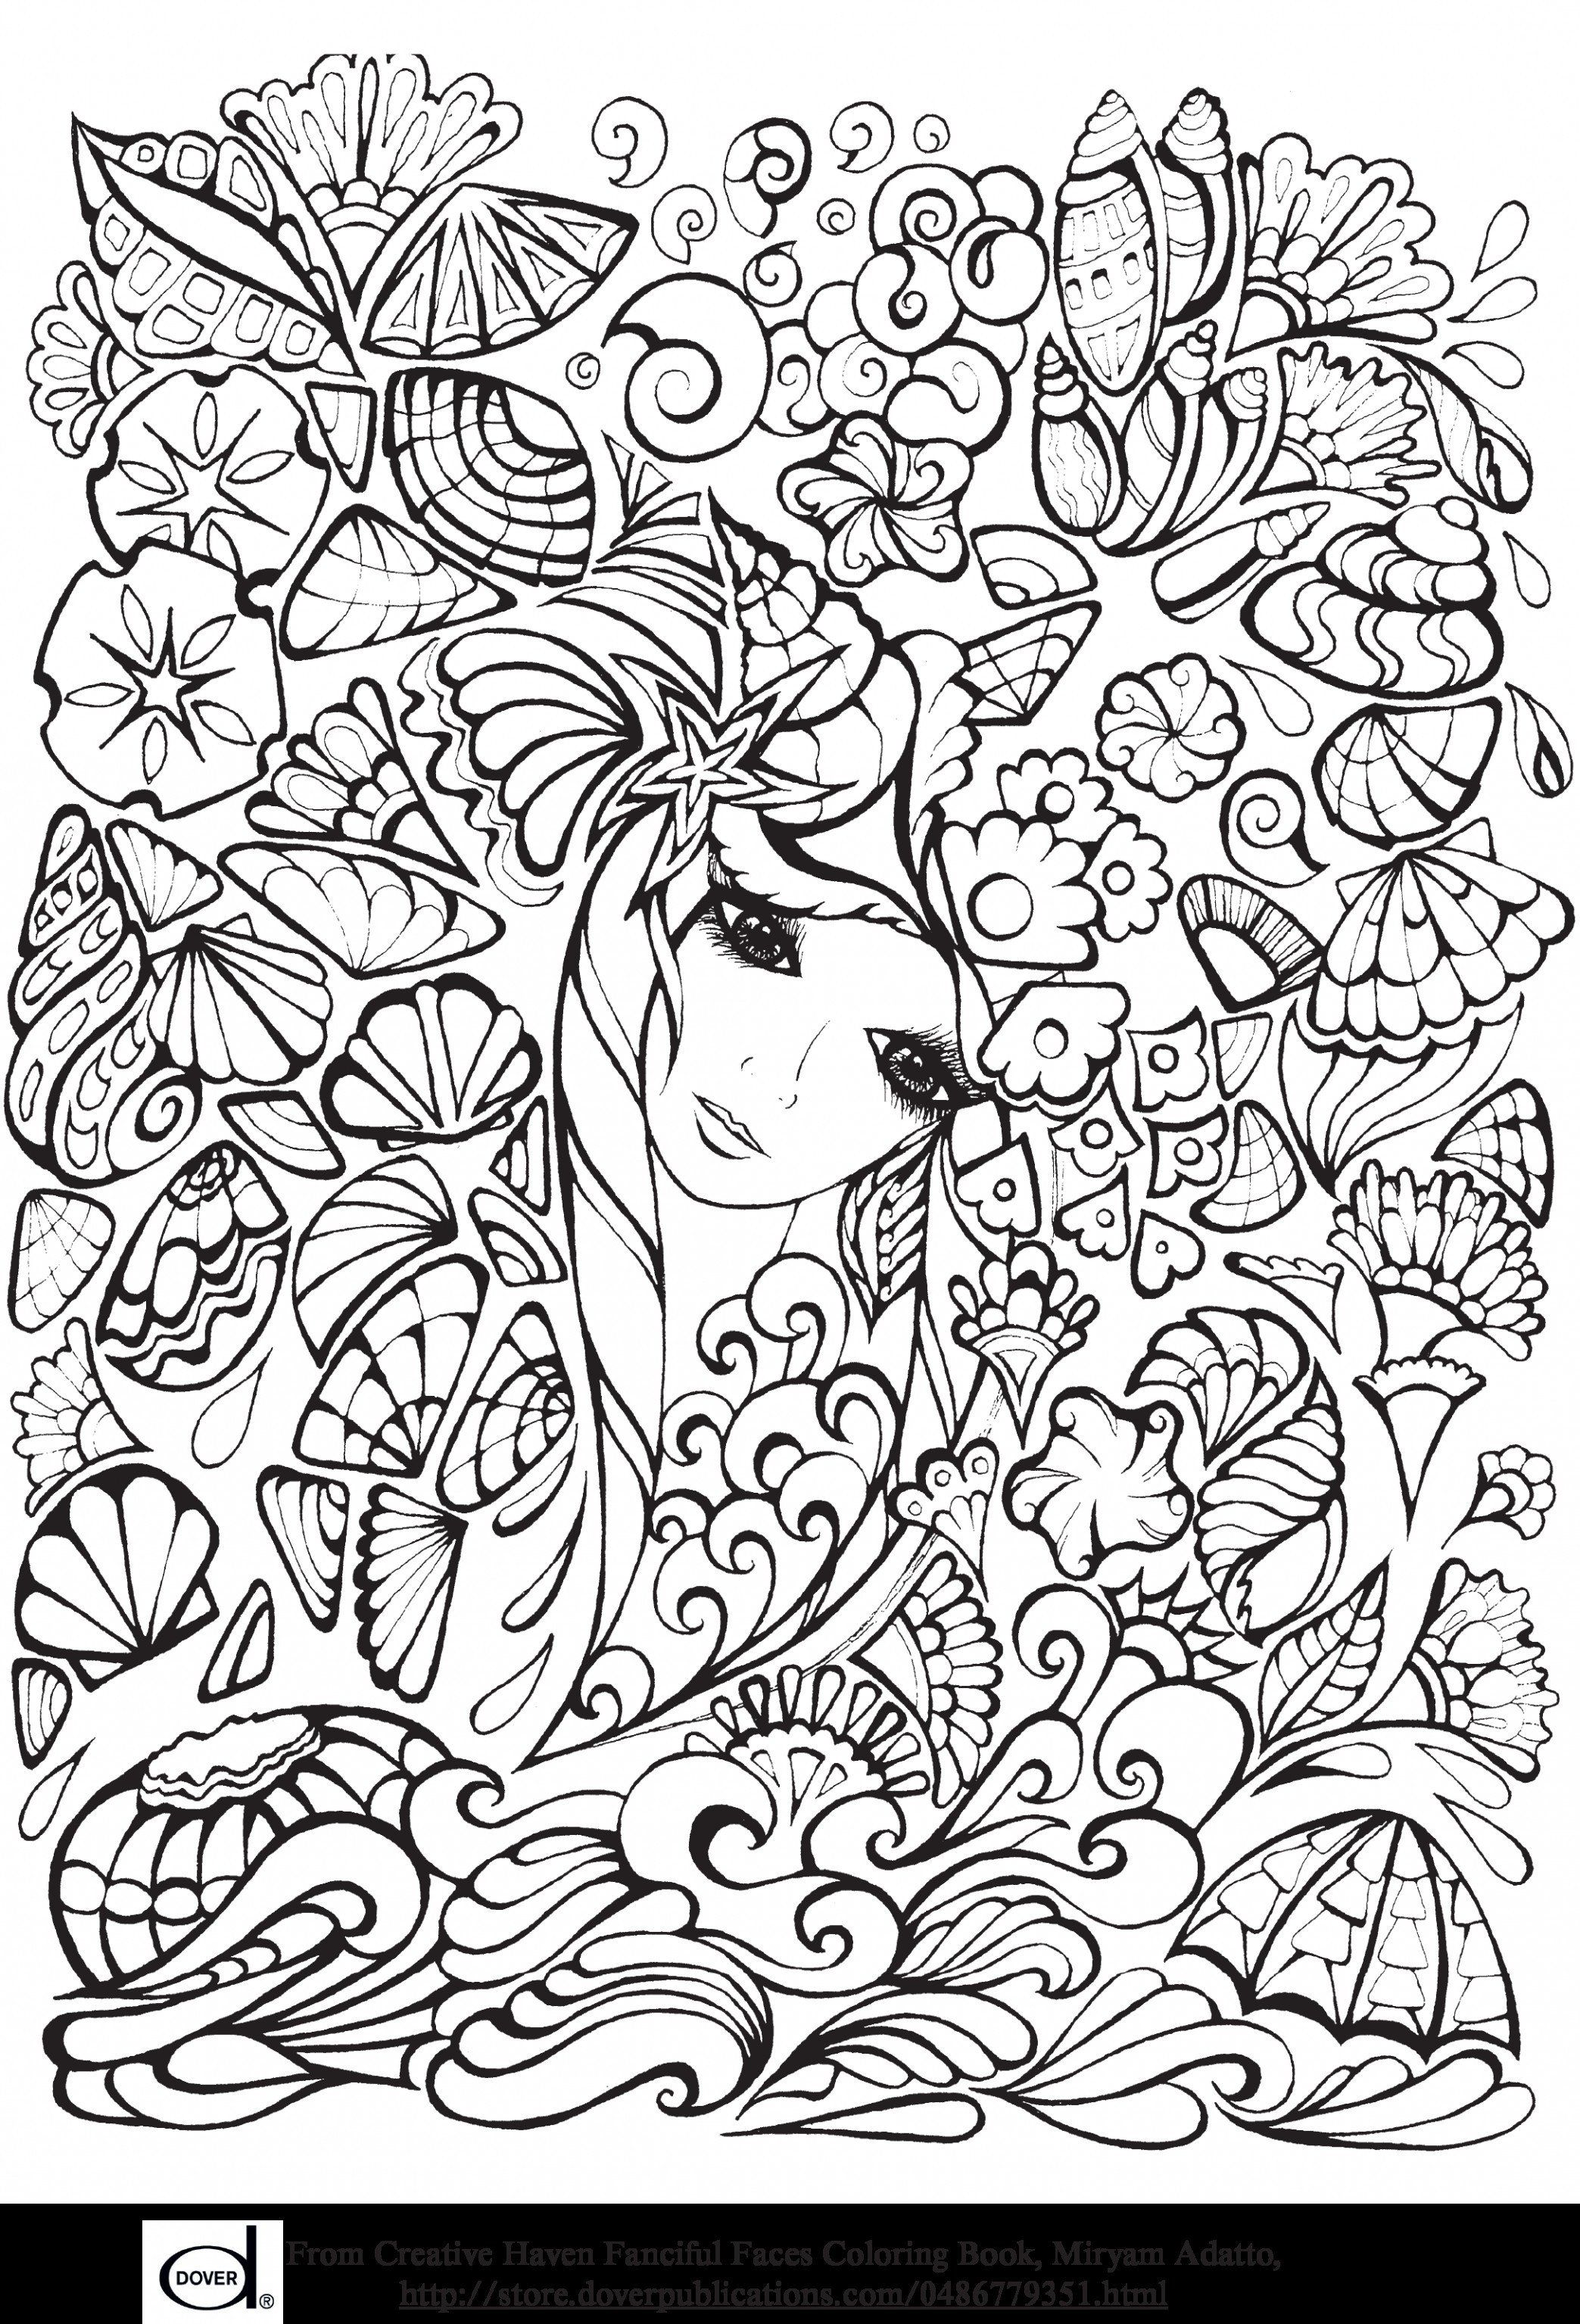 Anime Coloring Books For Adults Best Of Anime Coloring Pages For Girls Disney Princess Coloring Pages Princess Coloring Pages Tinkerbell Coloring Pages